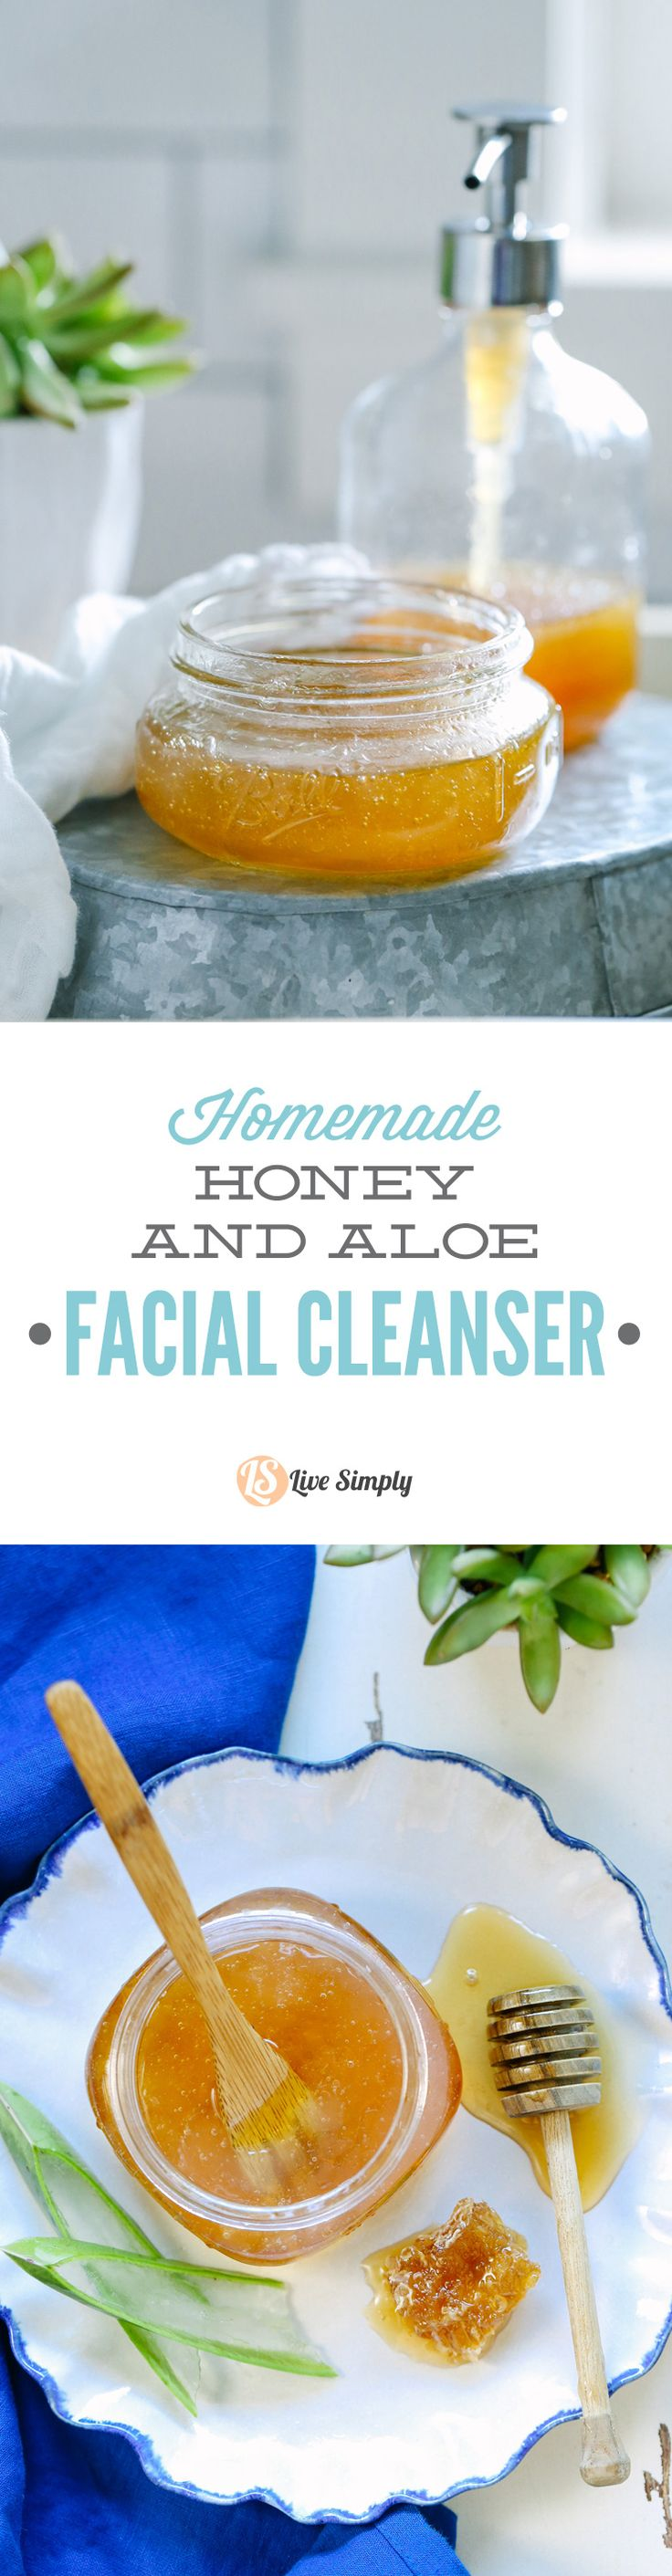 cures for diseases acne proactive facial cleanser